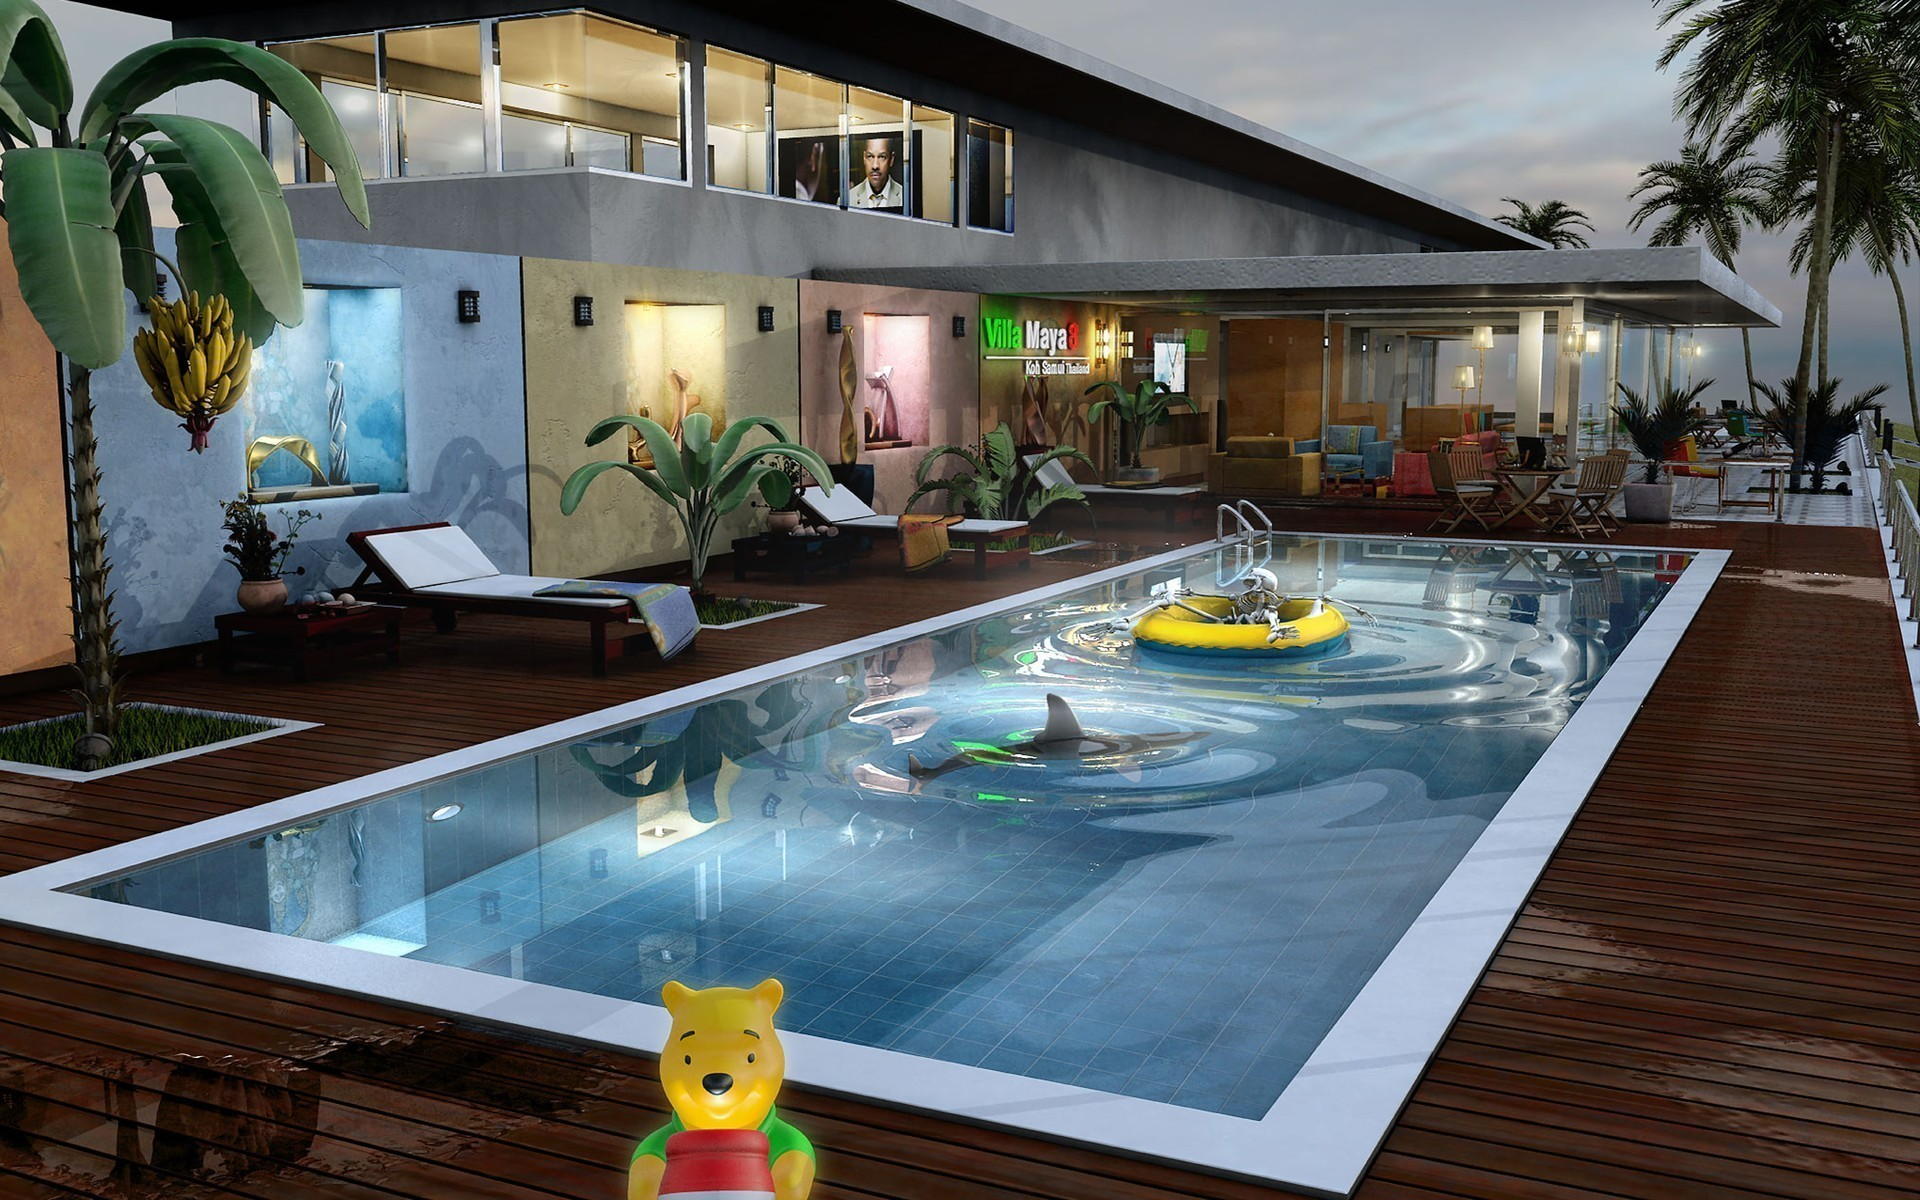 swimming-pools-for-homes-EBWC - Design On Vine on entry door designs for home, bar designs for home, english pub designs for home, wheelchair ramp designs for home, main gate designs for home, a view designs for home, water fountain designs for home, deck designs for home,